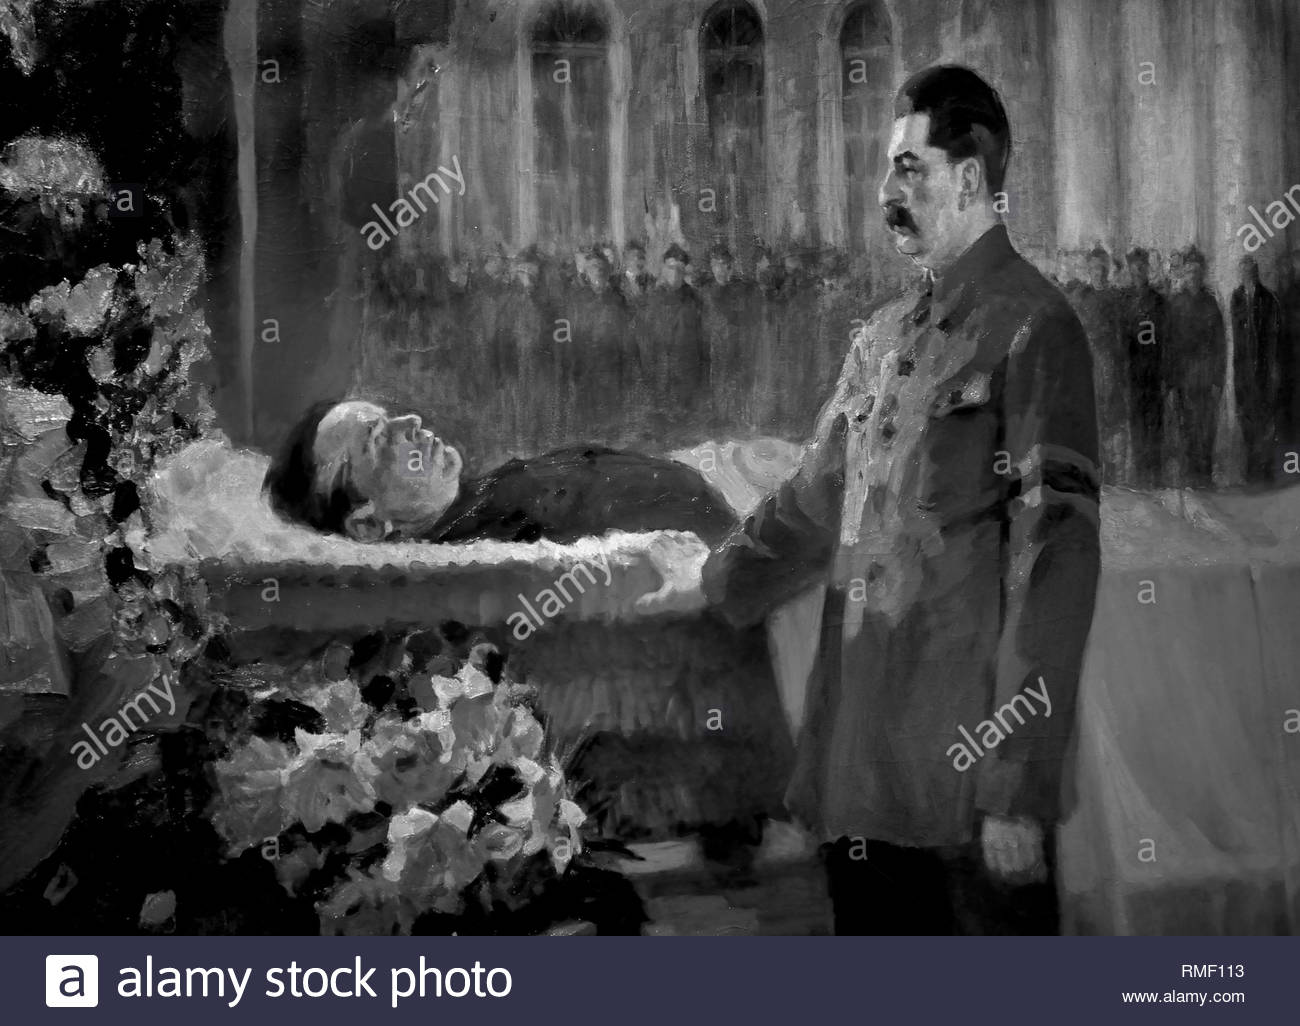 Joseph Stalin before Sergei Kirov's Coffin 1934 , 1937 by NIKOLAY RUTKOVSKY. Soviet Union Communist Propaganda (Russia under Lenin and Stalin1921-1953 ). Joseph Stalin before Sergei Kirov's Coffin', 1937. Artist: Nikolai Rutkovsky - Stock Image